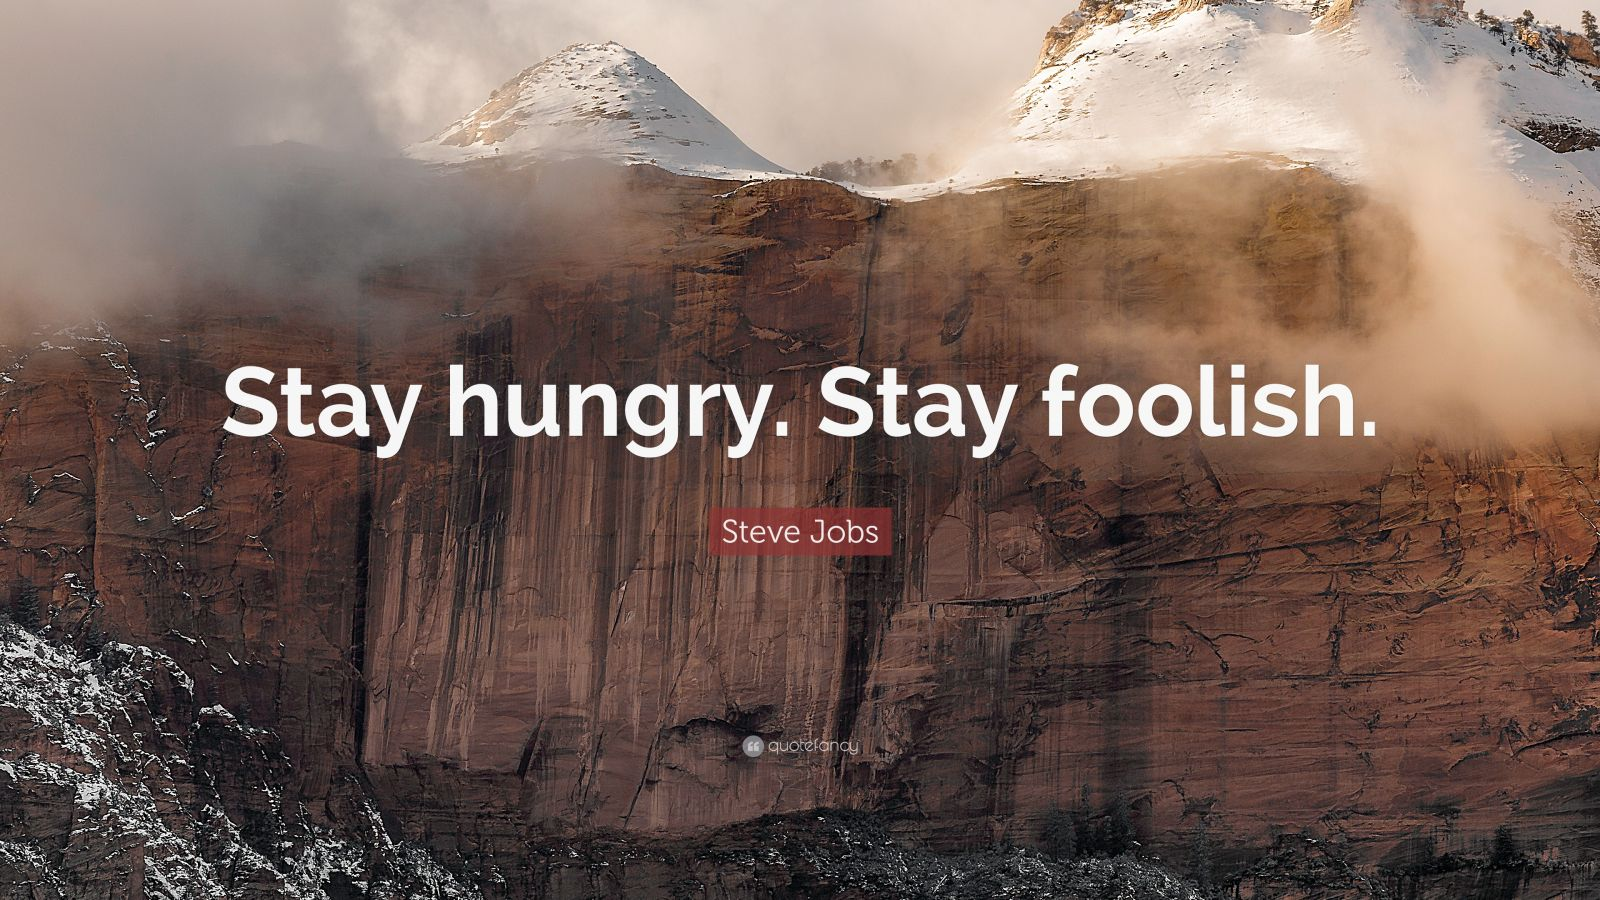 Steve Jobs Quotes 100 Wallpapers Quotefancy